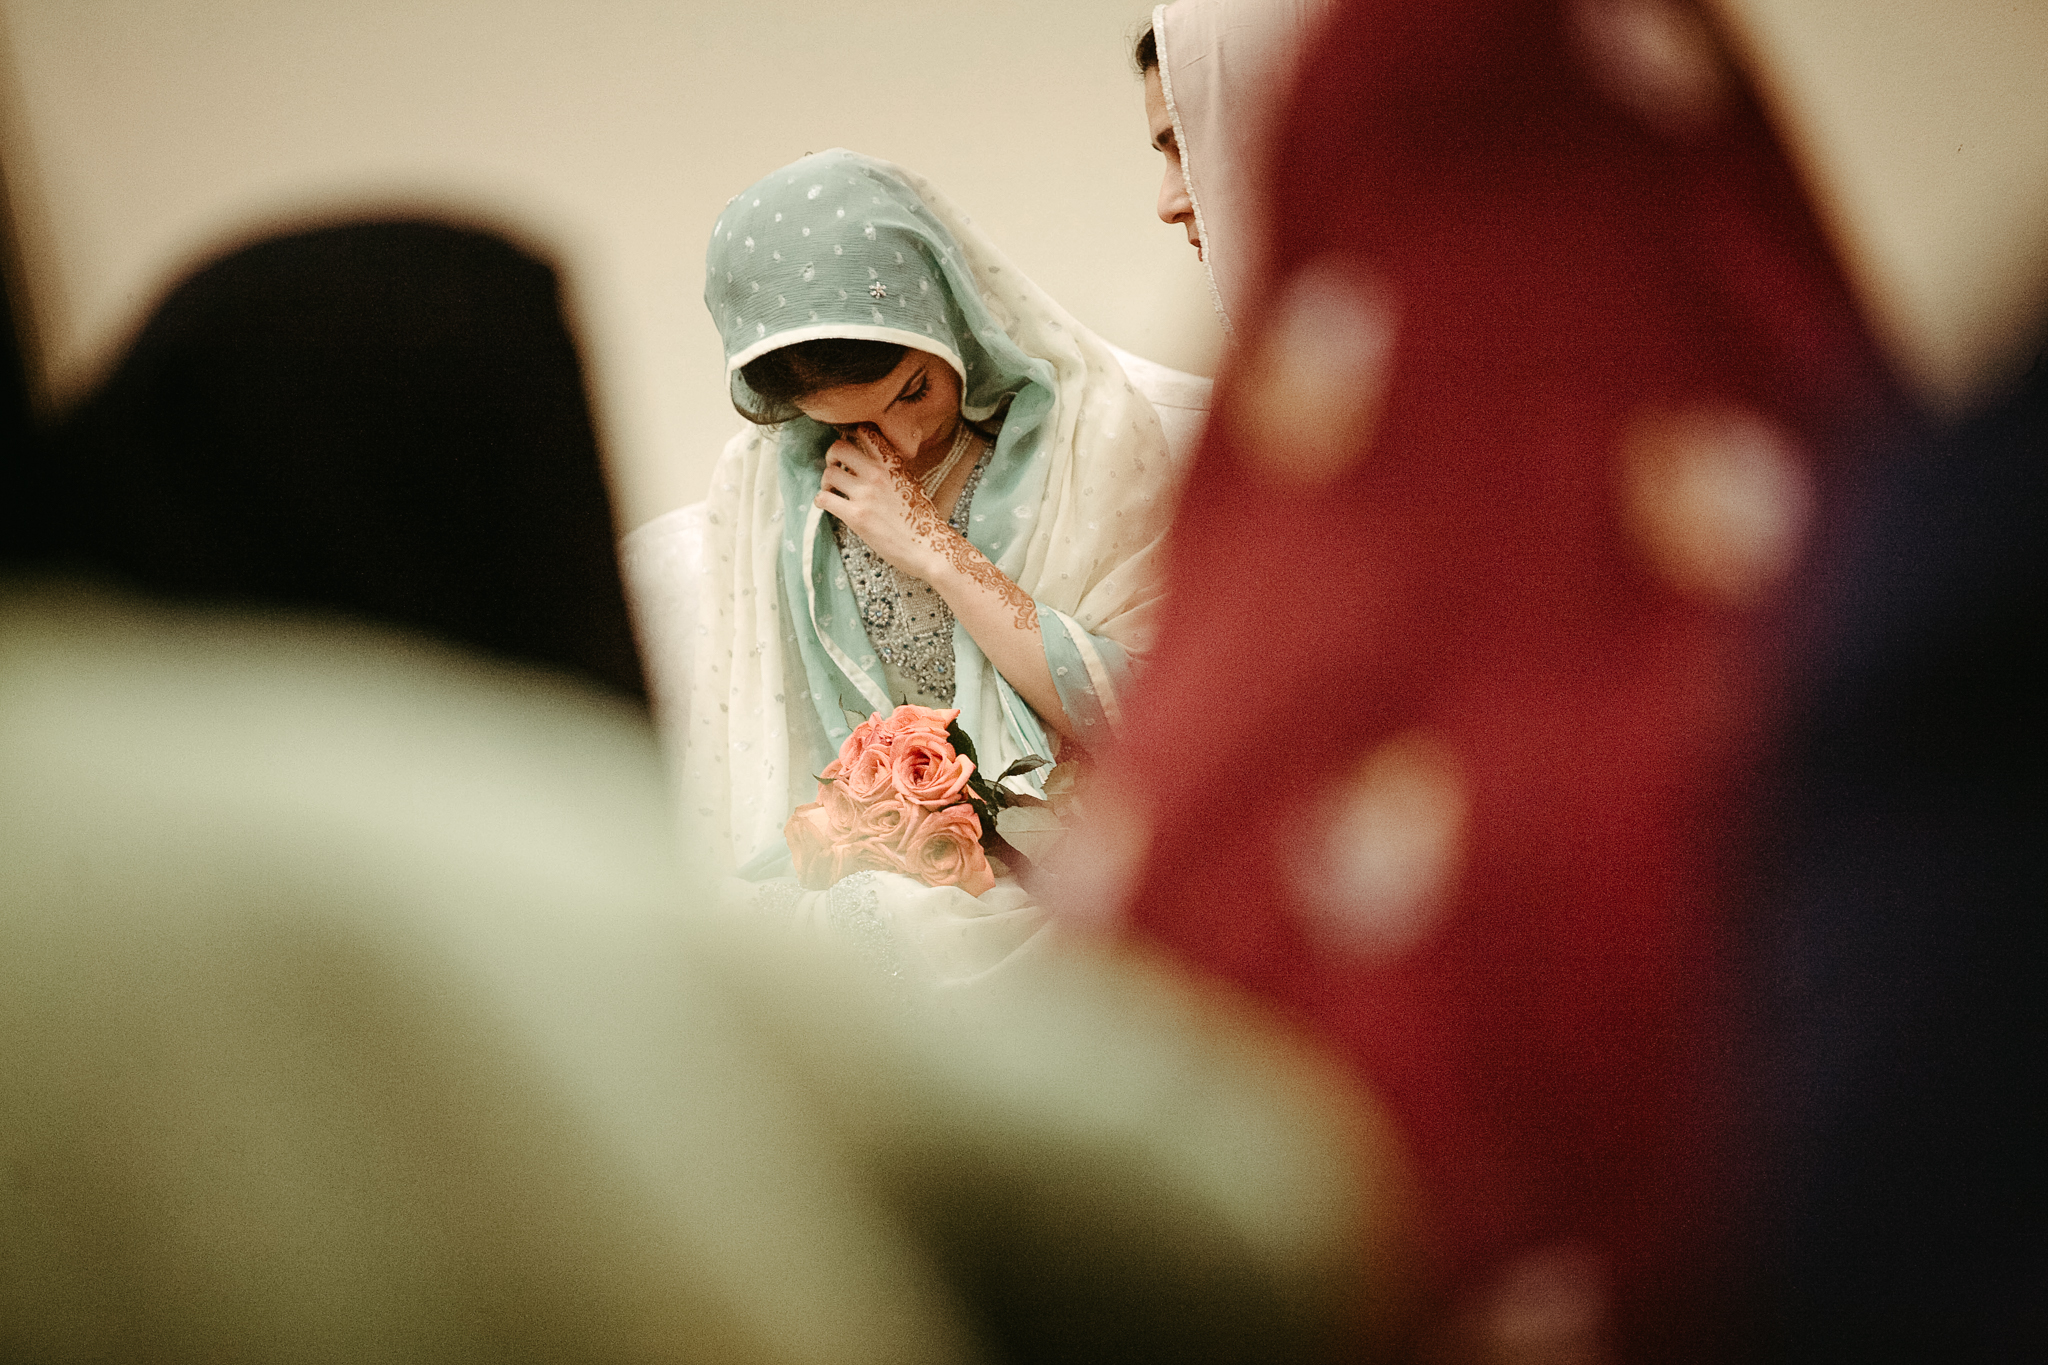 Bride cries at Nikah wedding traditional ceremony documentary photo